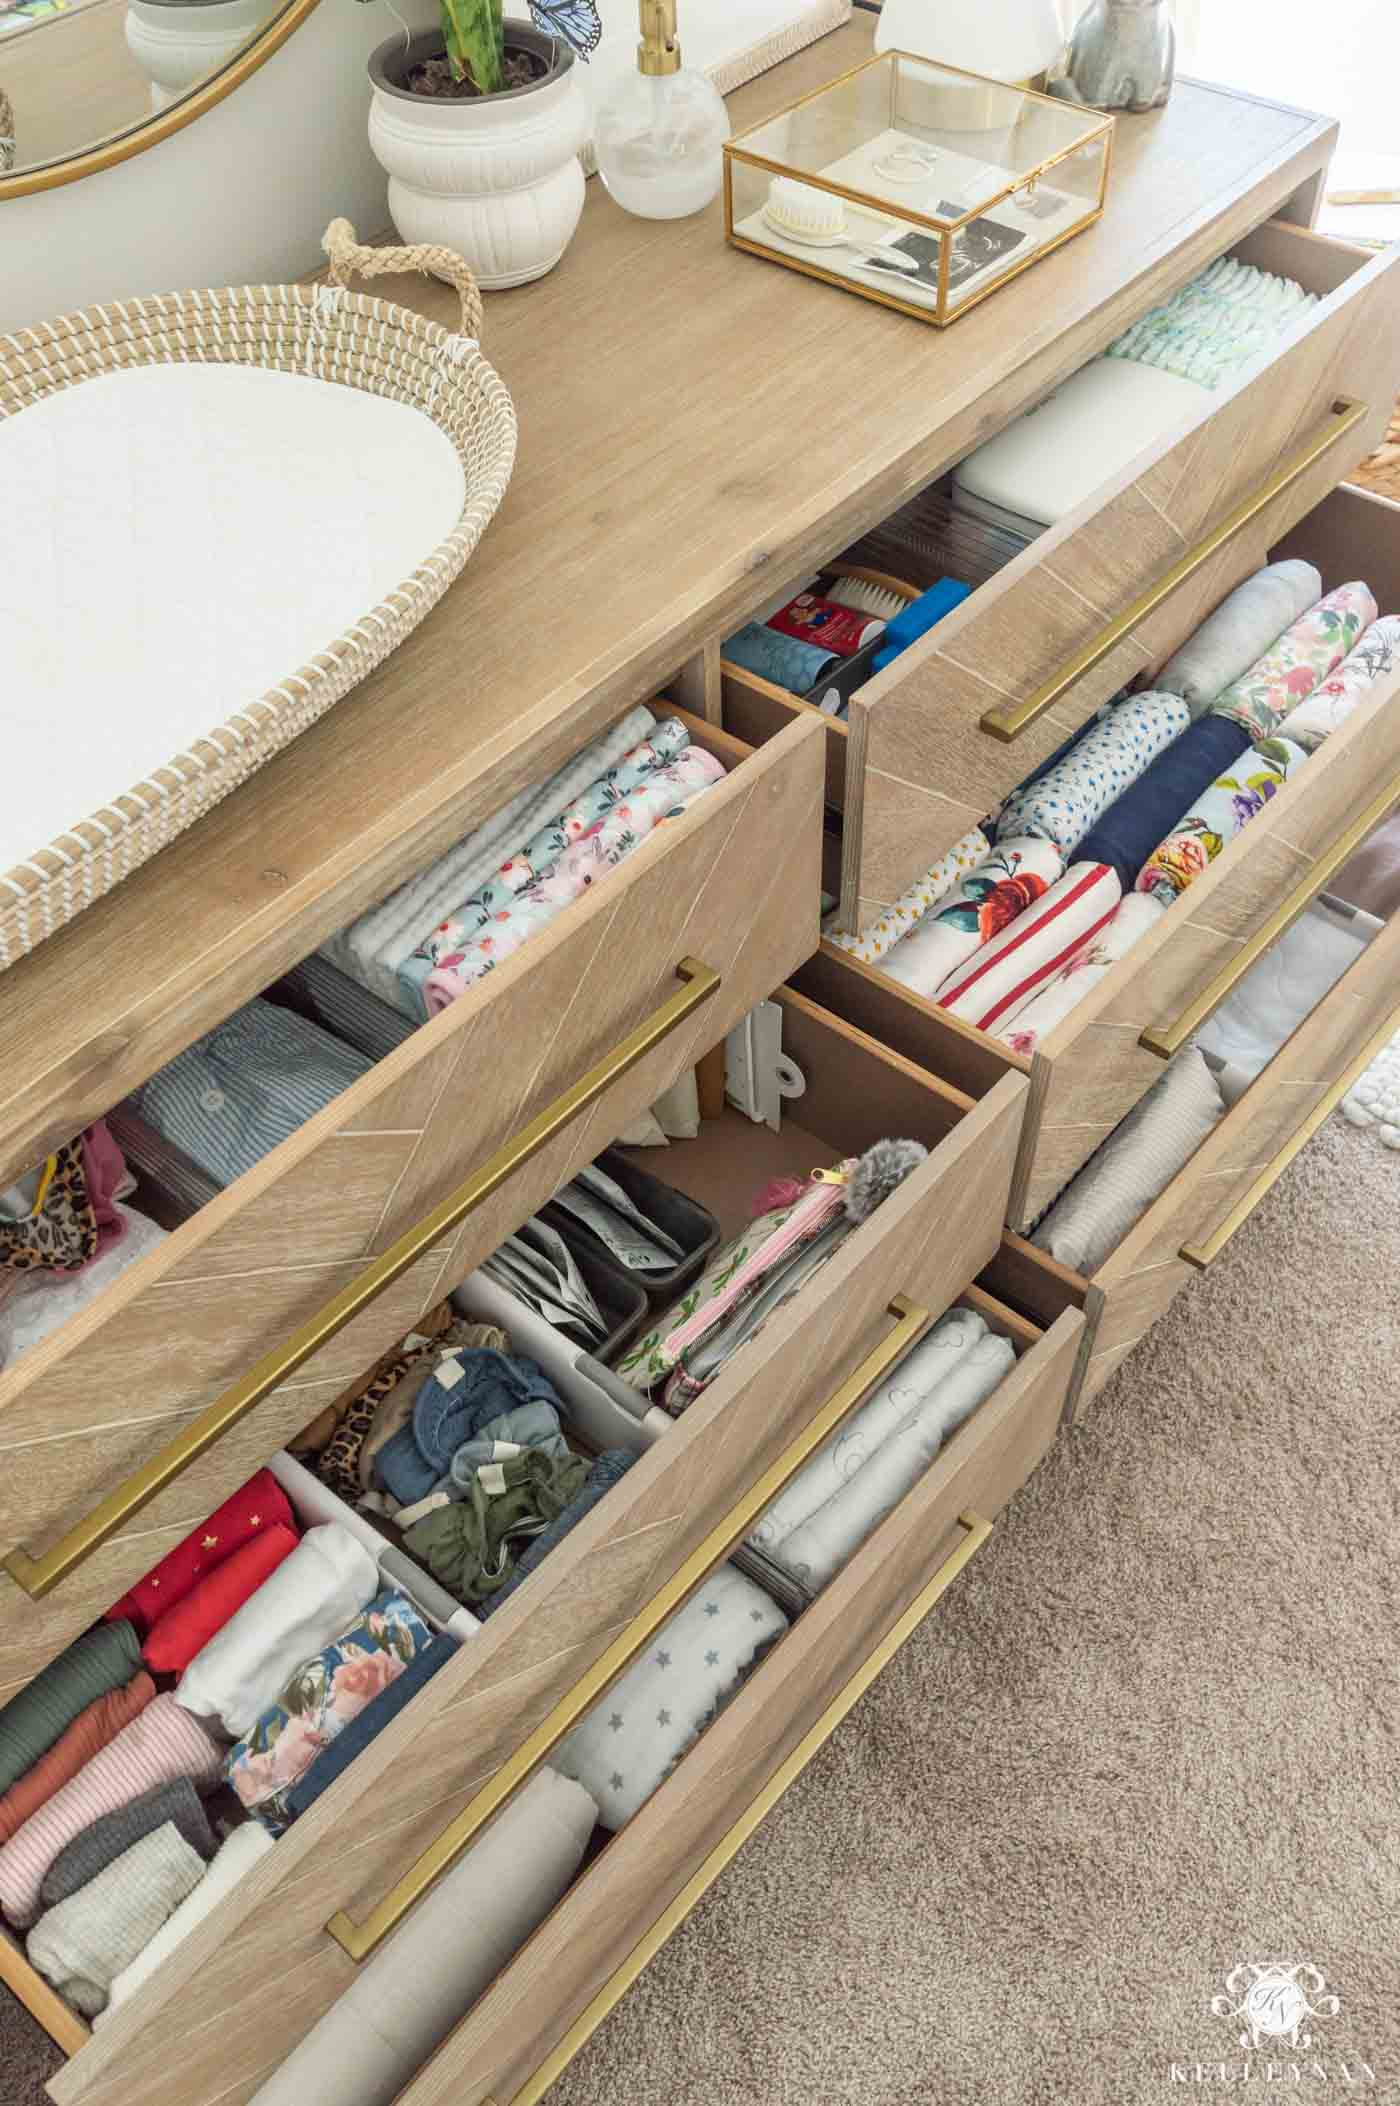 Nursery Dresser Organization -- How to Organize and Prep Your Baby's Essentials